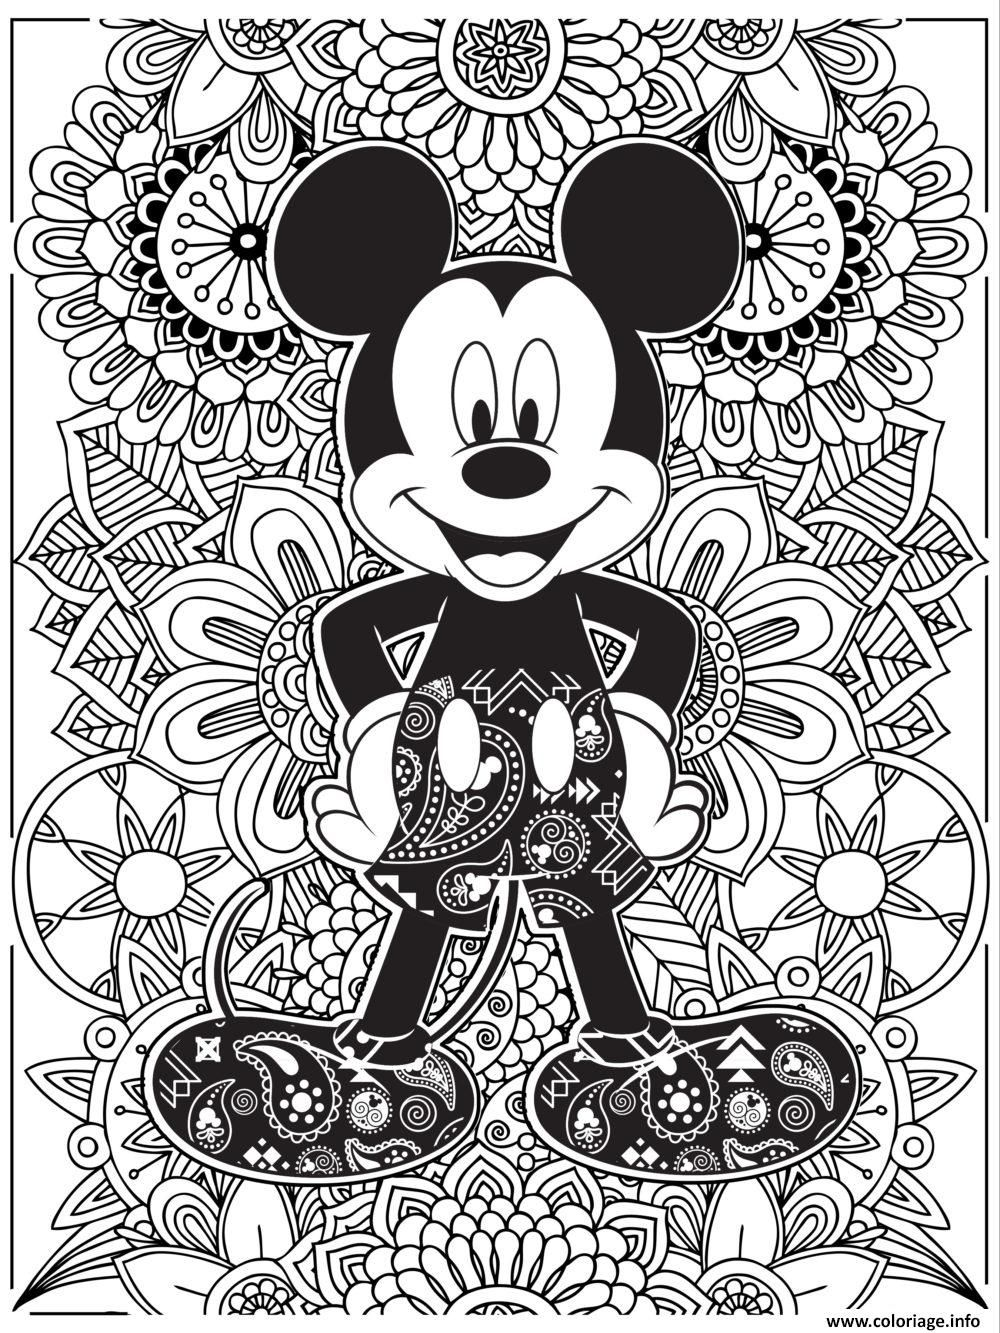 Coloriage Mandala Disney Mickeymouse Hd Dessin A Imprimer Coloring